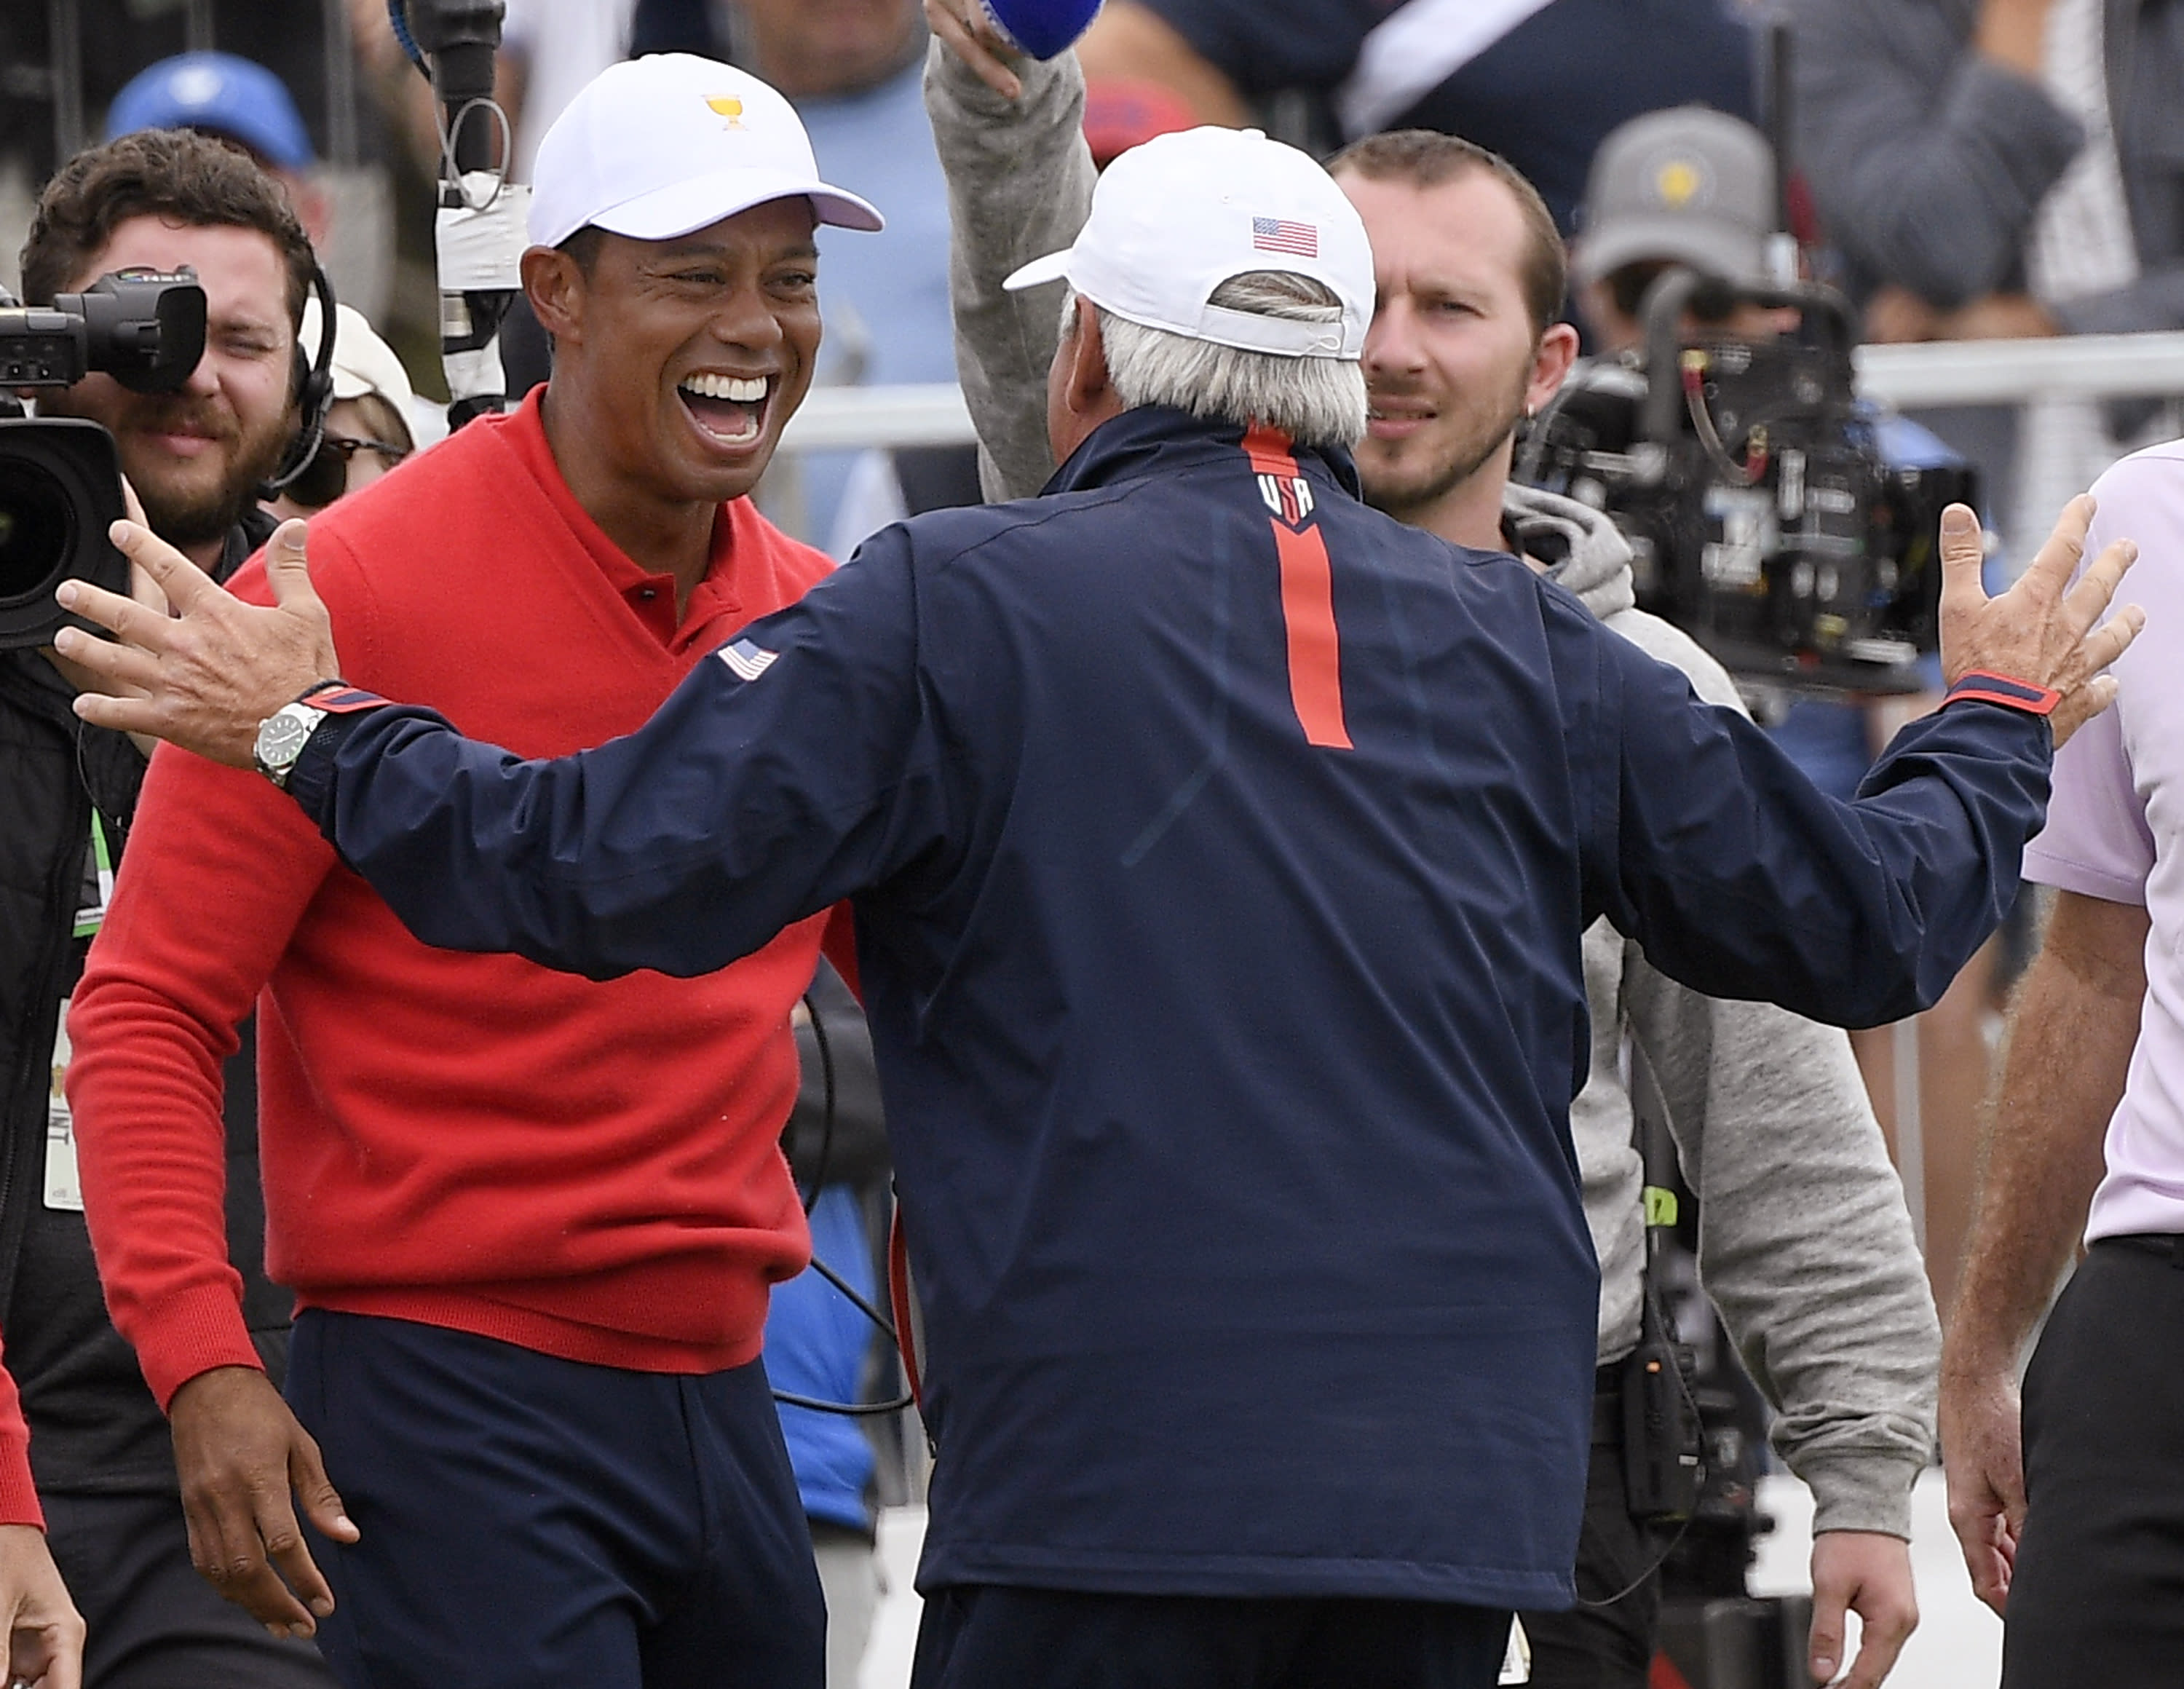 Five interesting statistics from the Presidents Cup